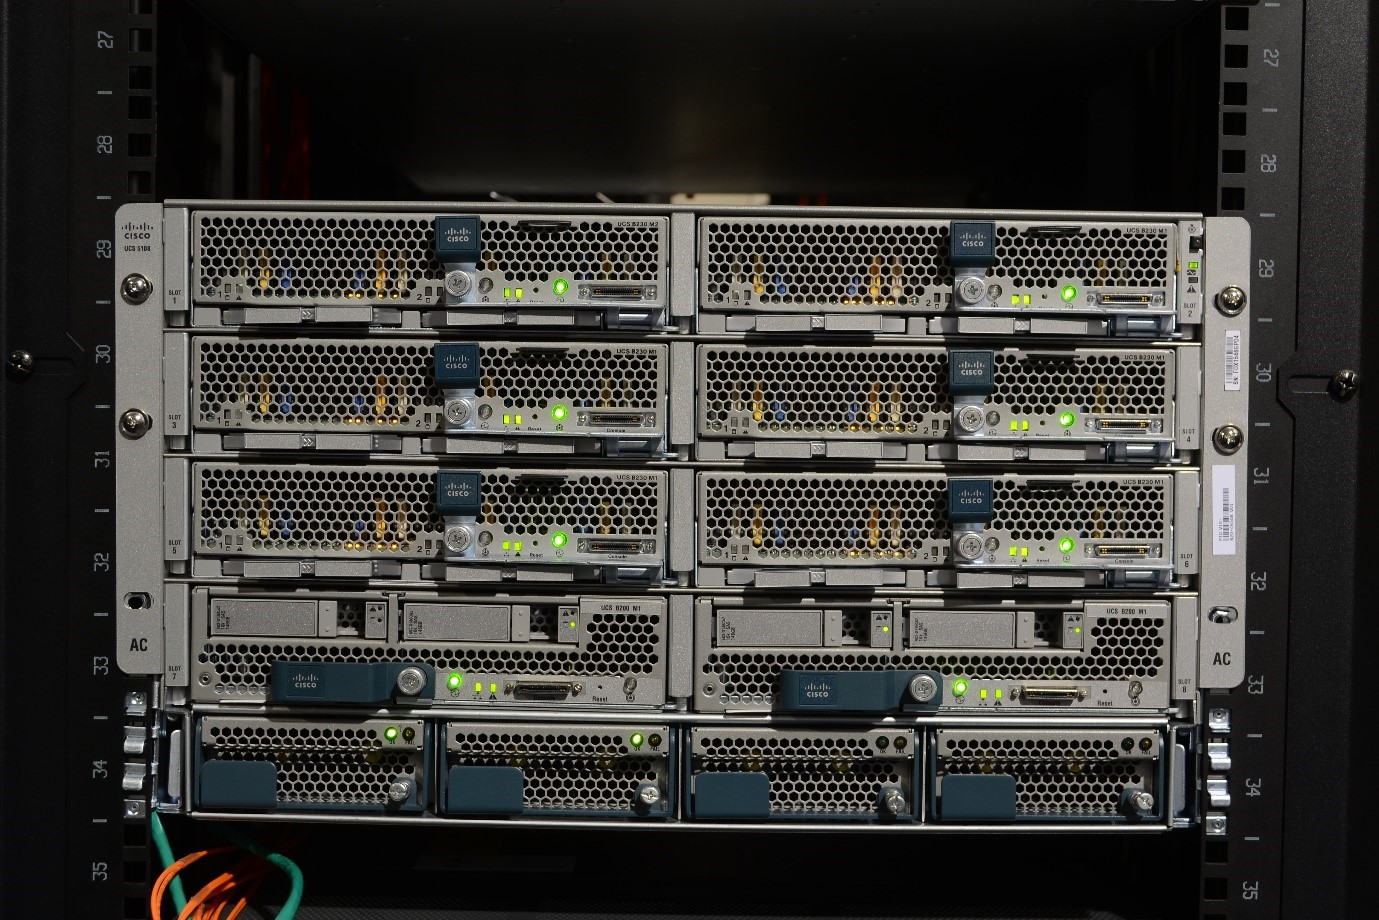 Cisco Small Business 500 Series Stackable Managed Switches (in rack)